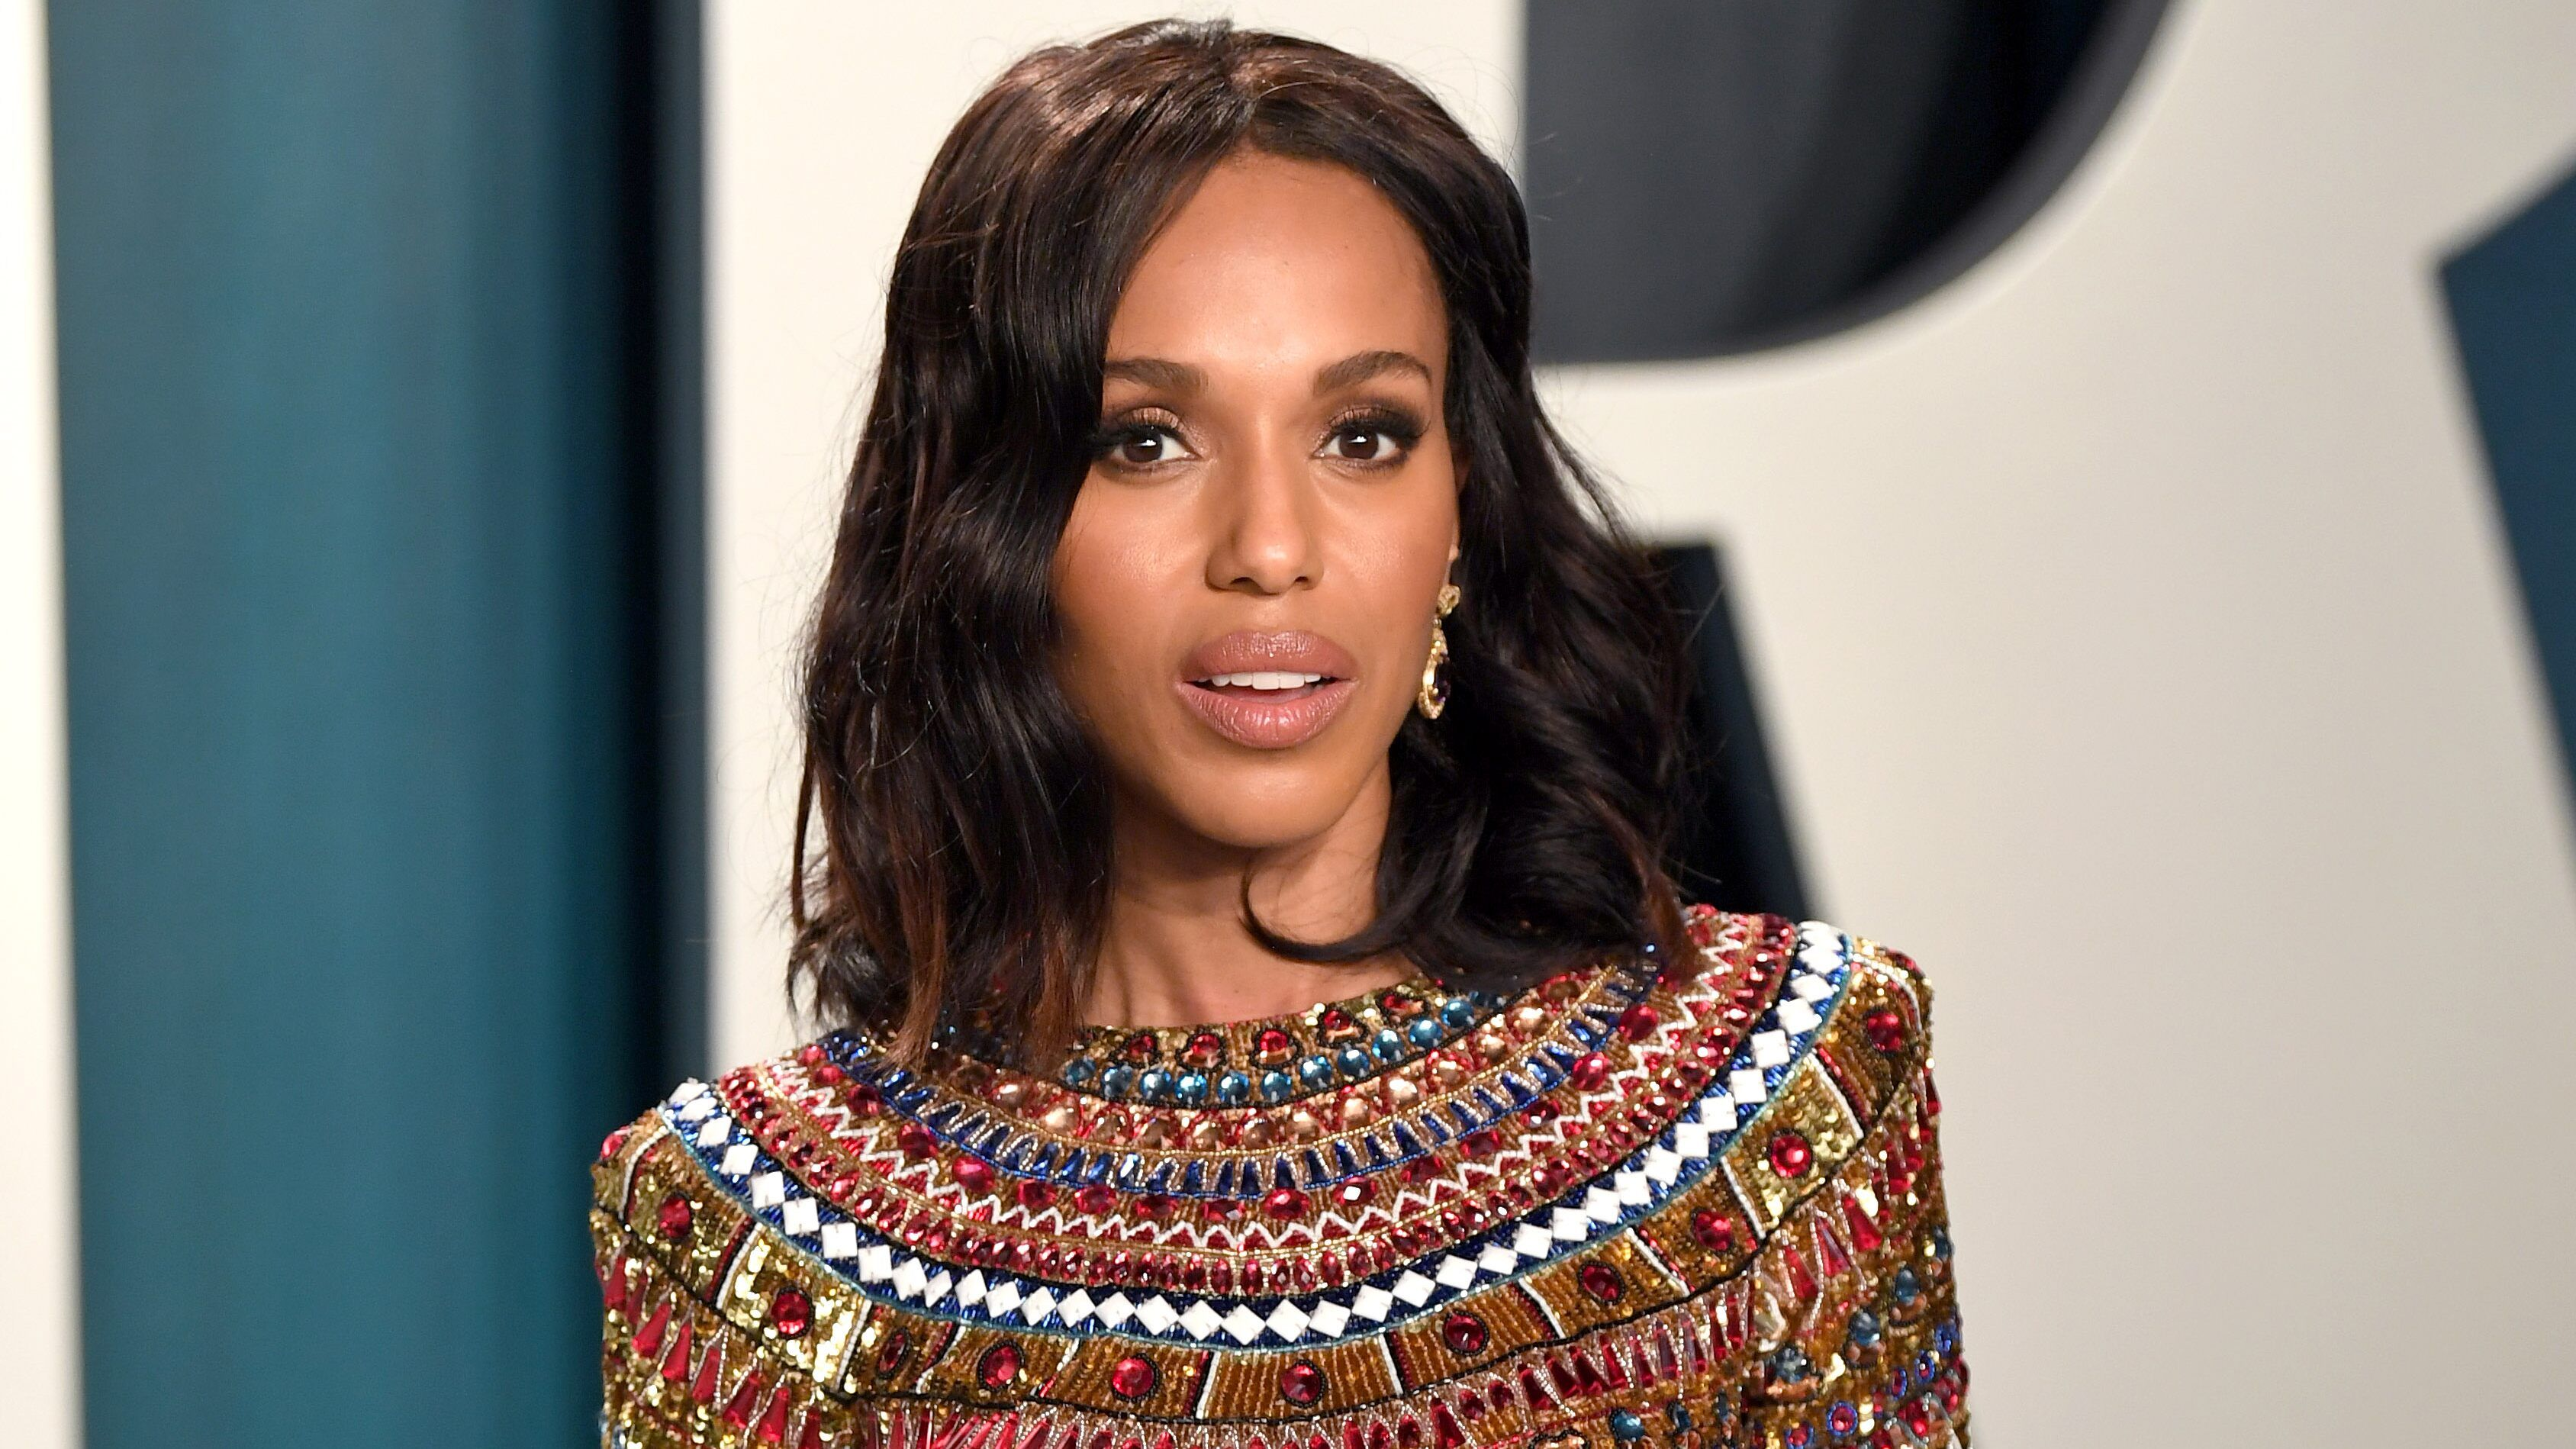 Kerry Washington served as the emcee for the third night of the Democratic National Convention on Wednesday.The former